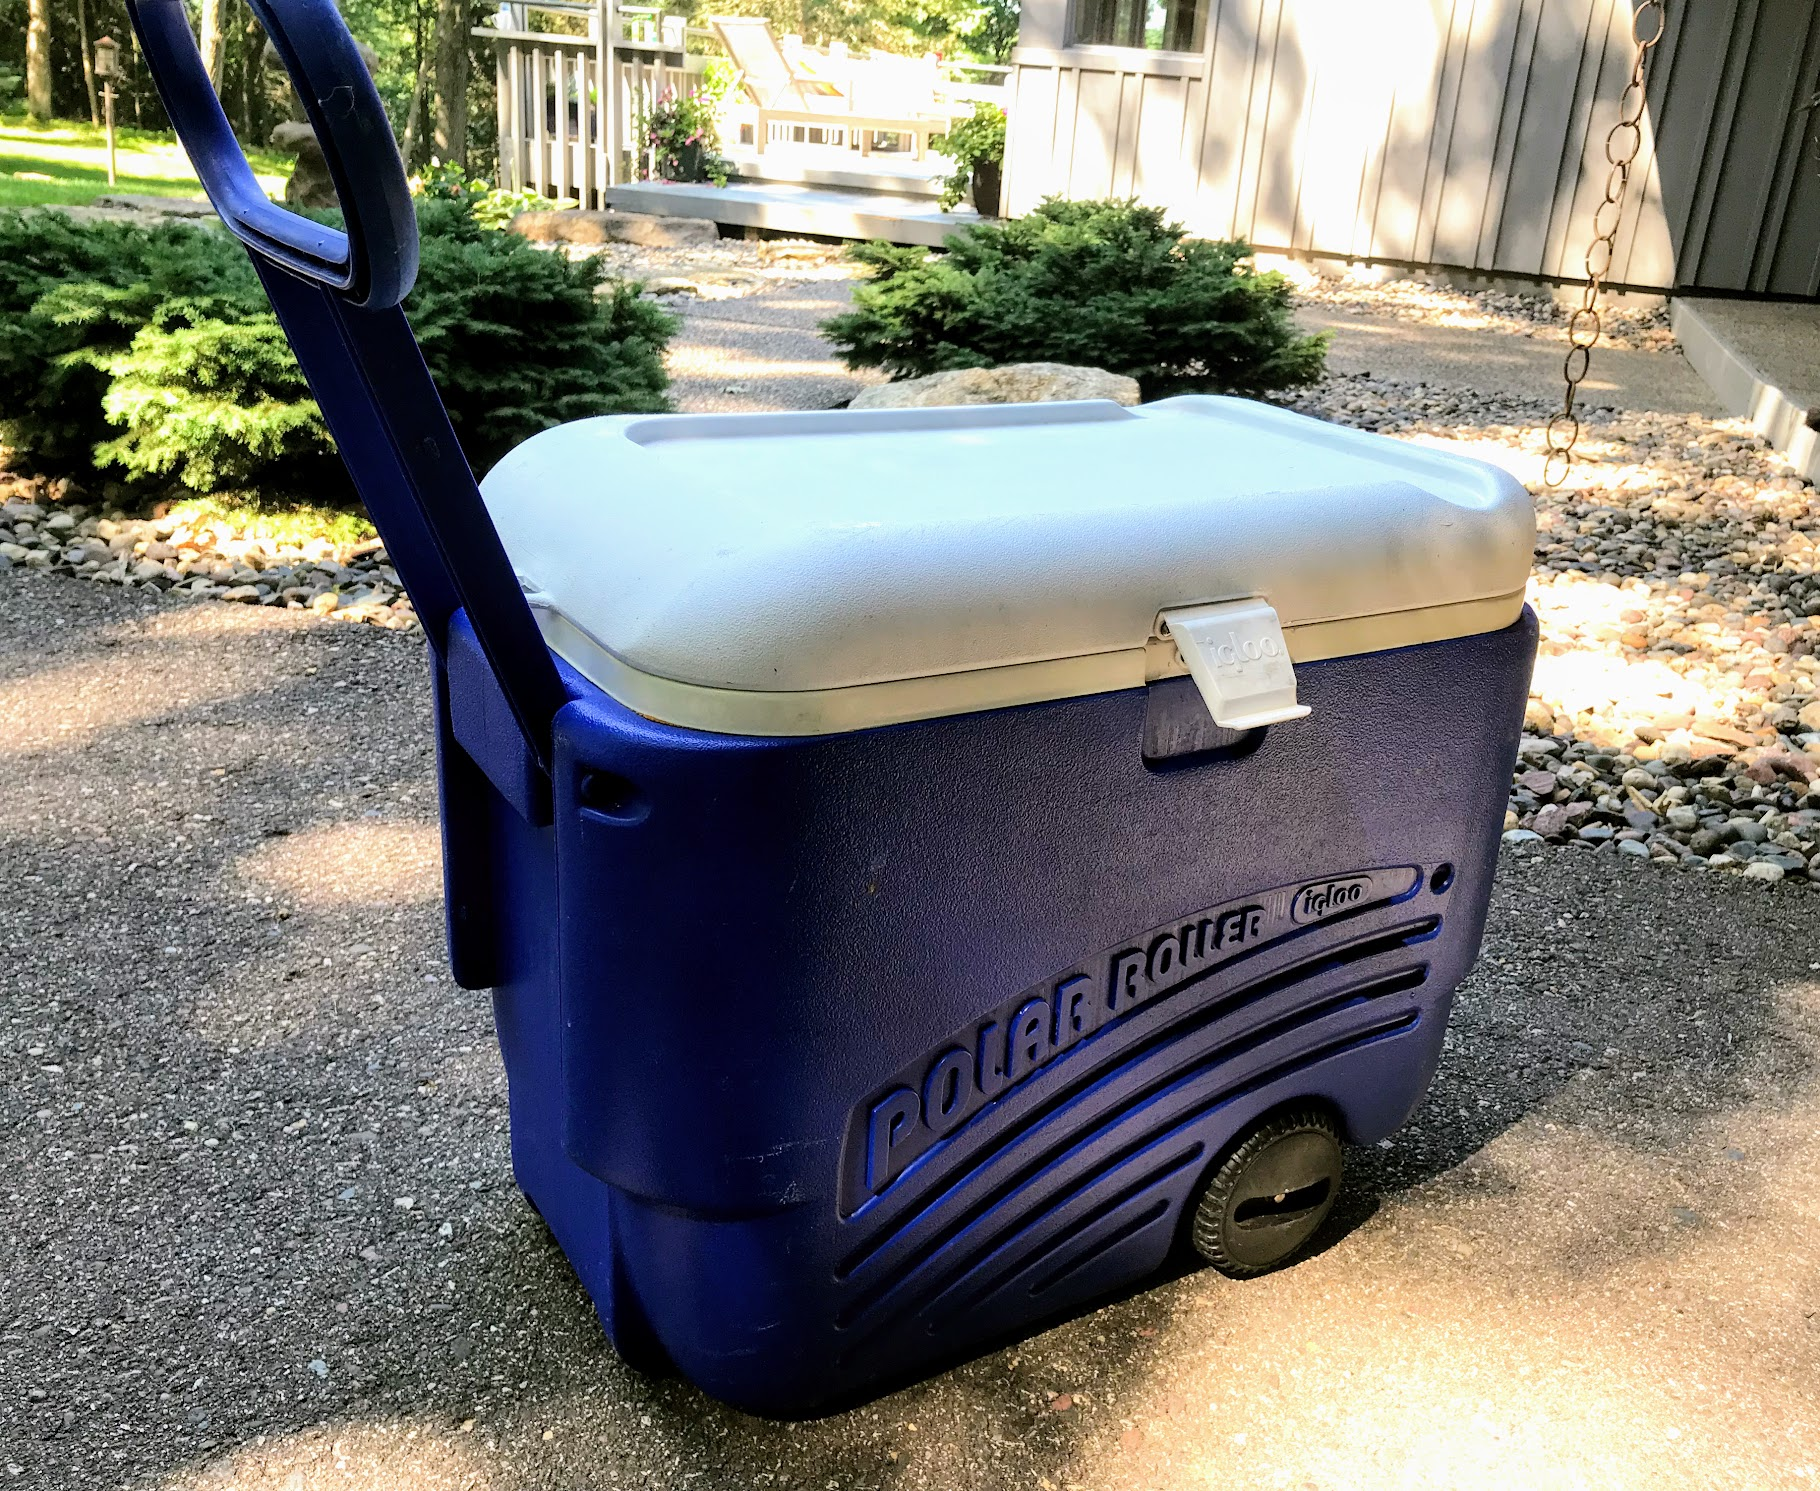 beach cooler on wheels